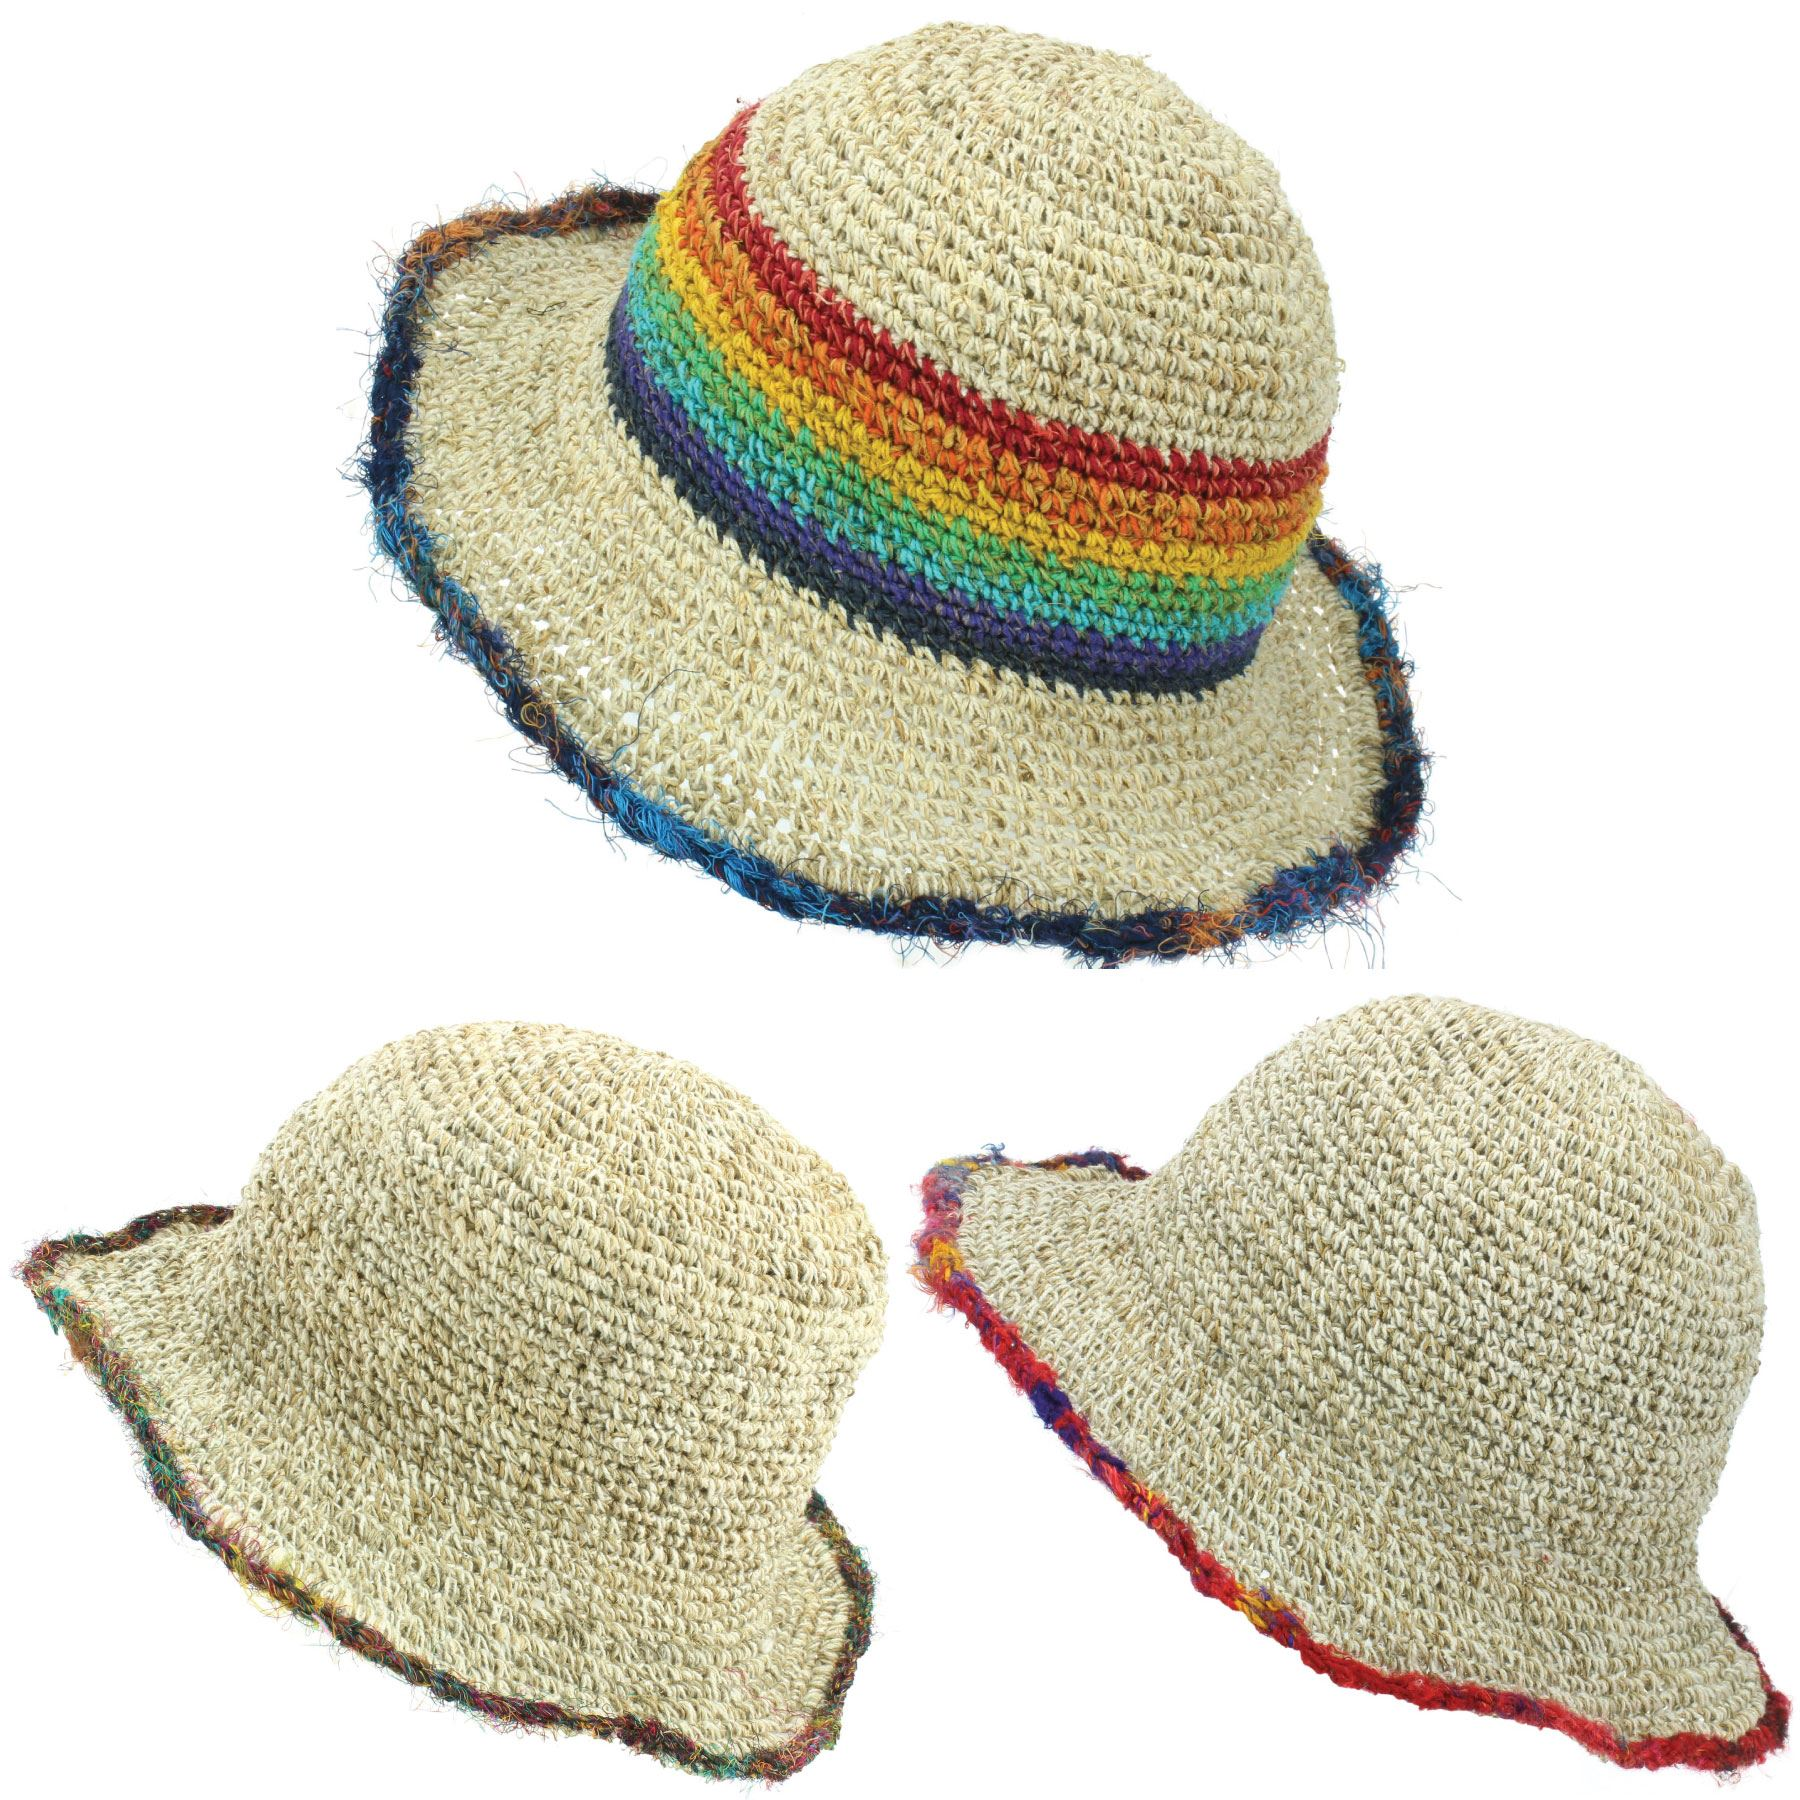 ea954c5ea1d563 Sun Hat Hemp Cotton Summer LoudElephant Brim Beach Cap Boho Hippie ...